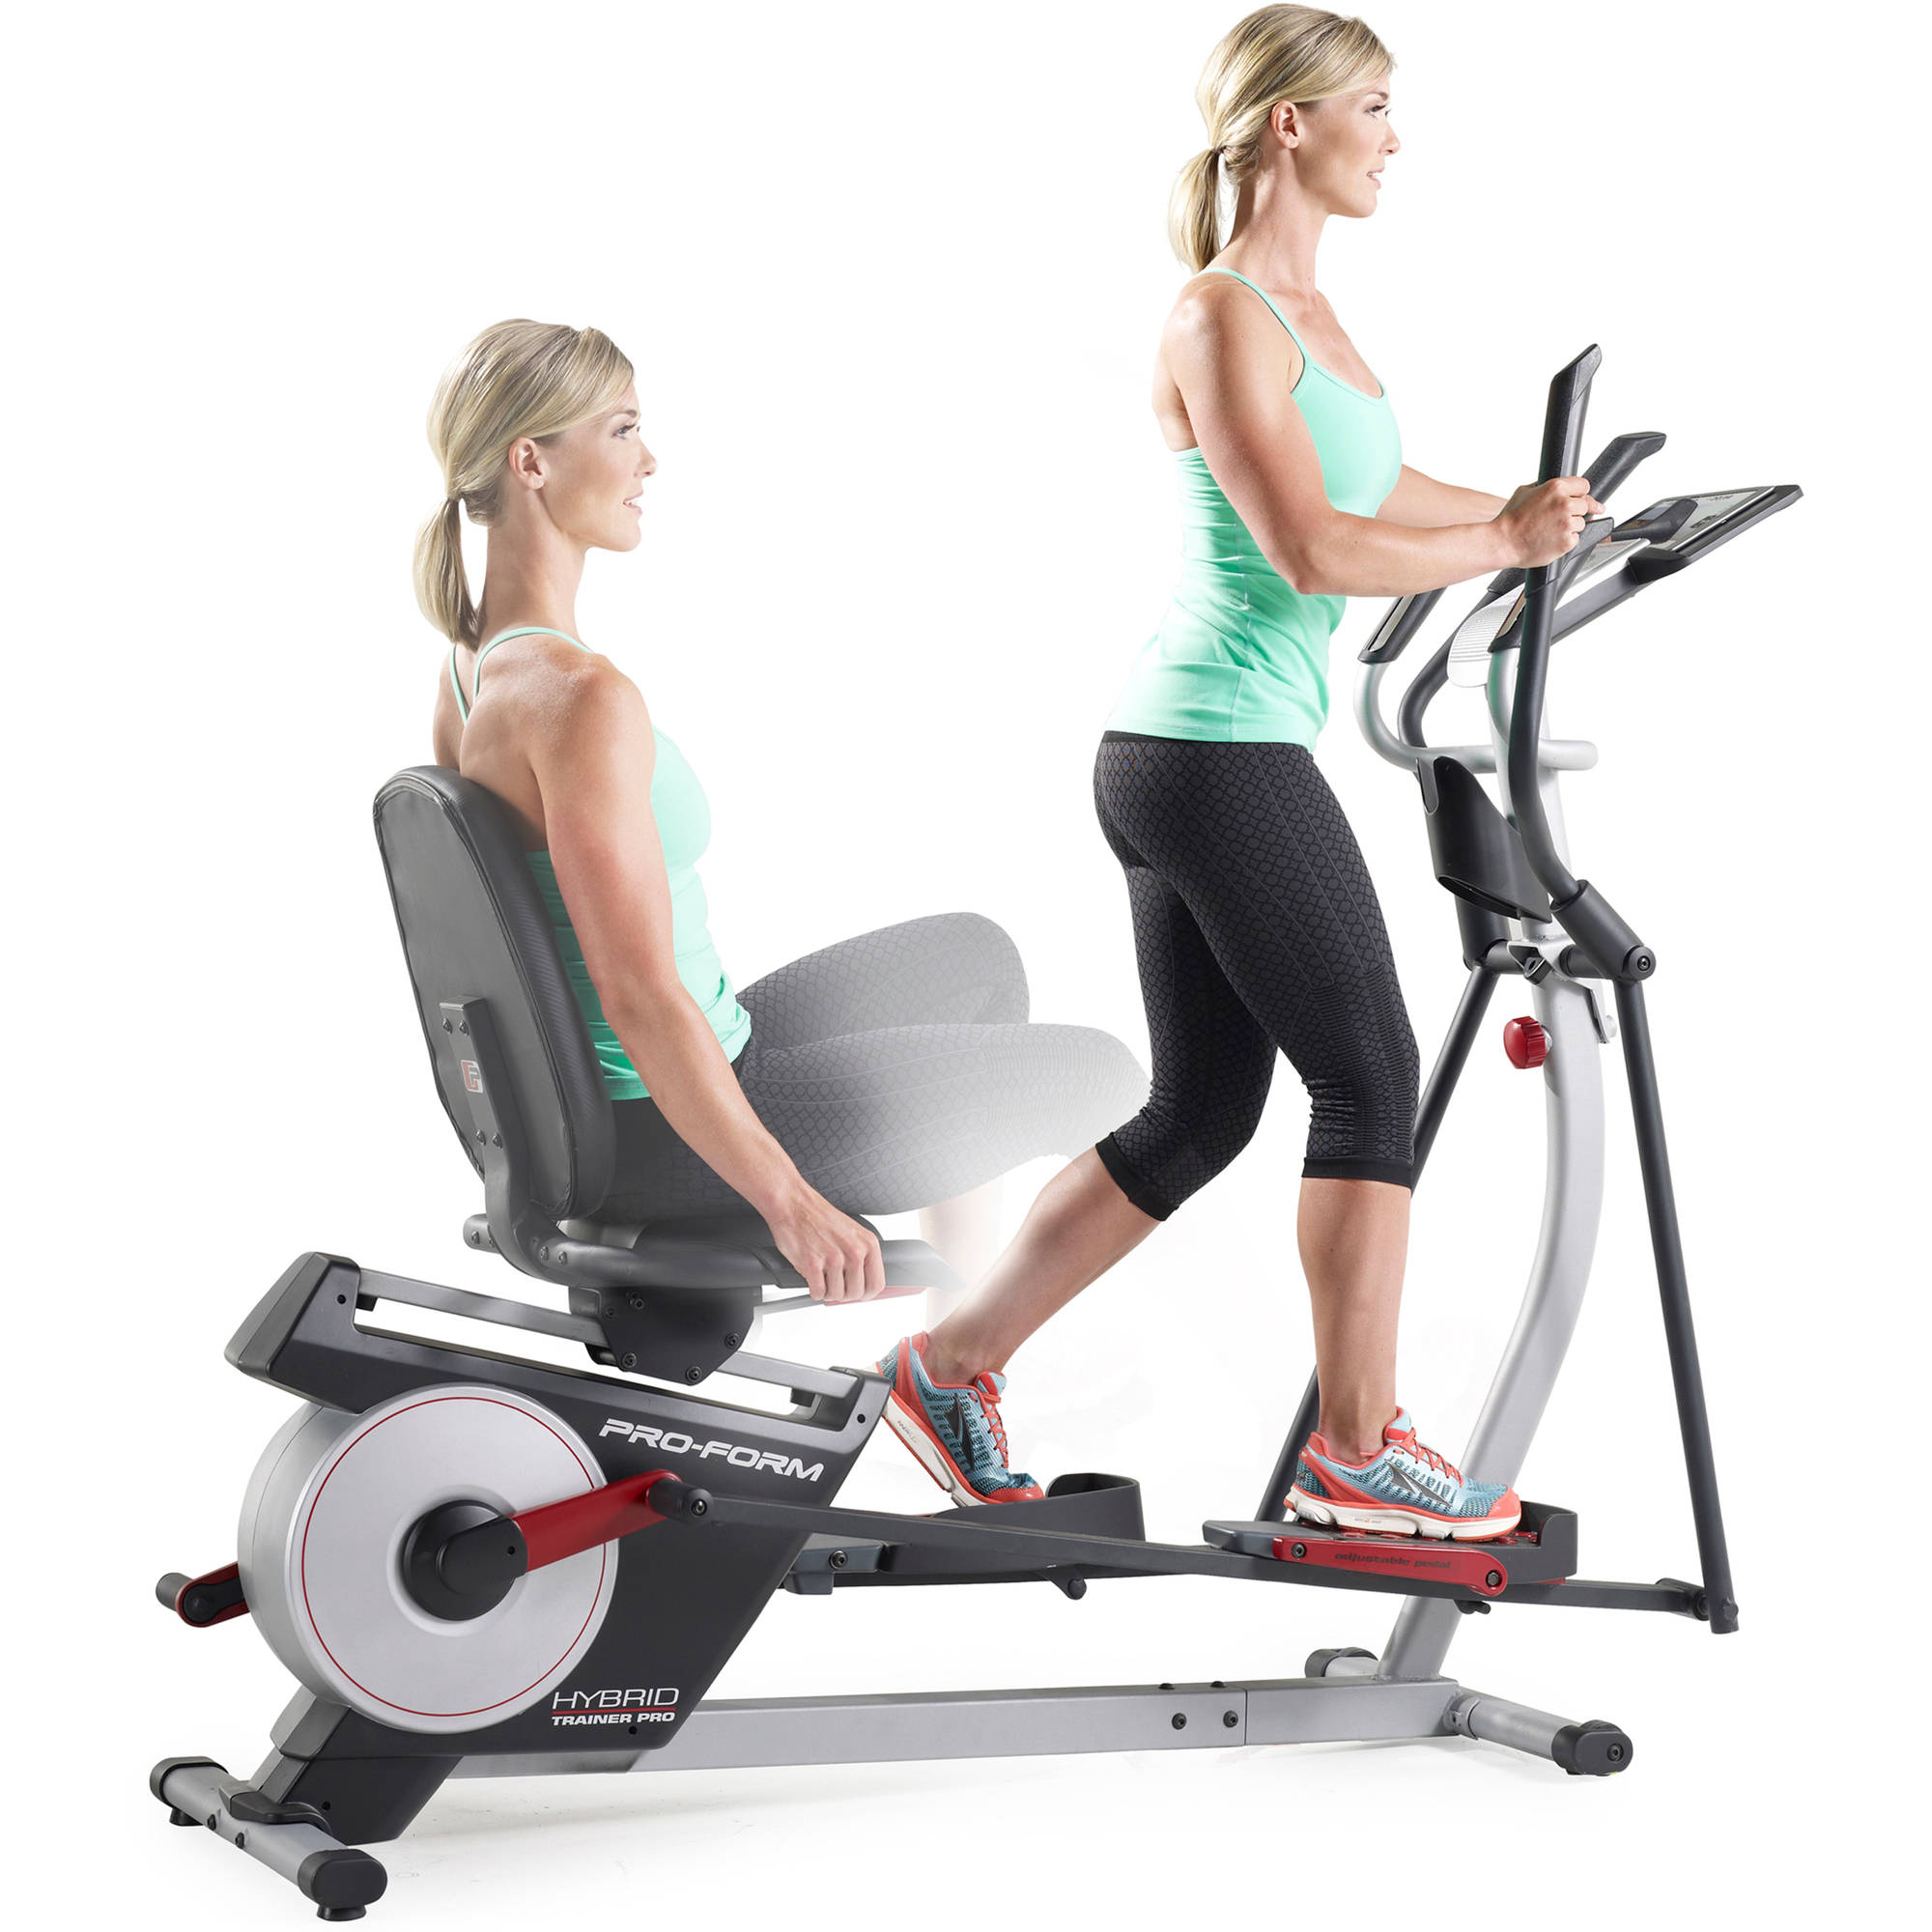 ProForm Hybrid Trainer PRO, 2-in-1 Elliptical and Recumbent Bike with 20 Resistance Levels